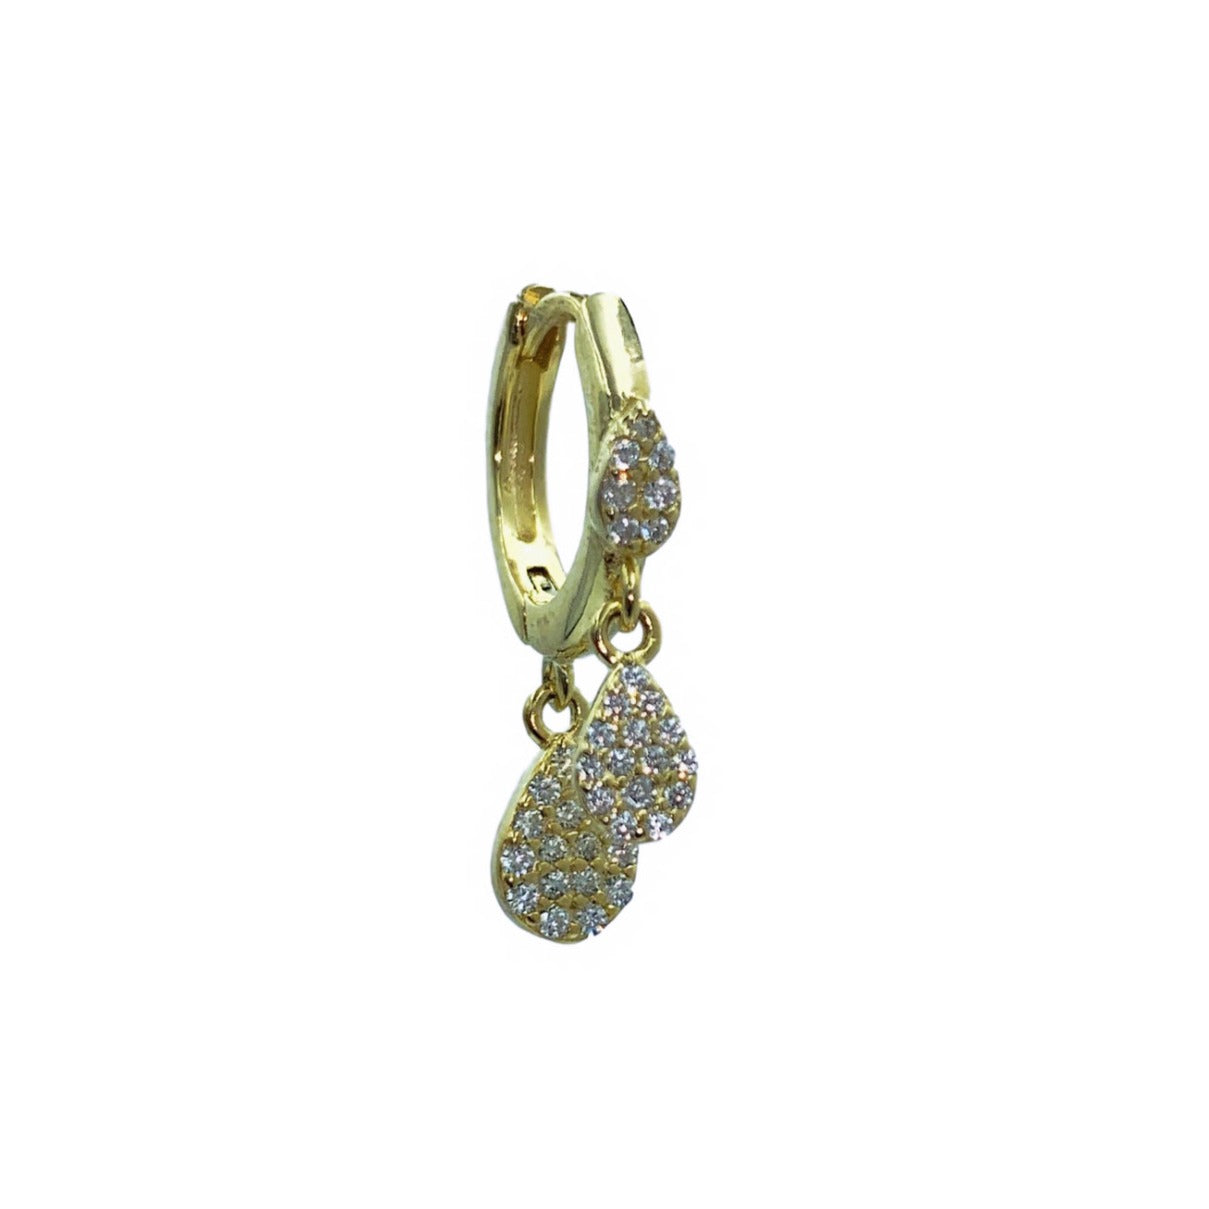 Made in New York City, our beautiful sterling silver gold plated embellished with three dangling pear - shaped cubic zirconia stones. Hypoallergenic.